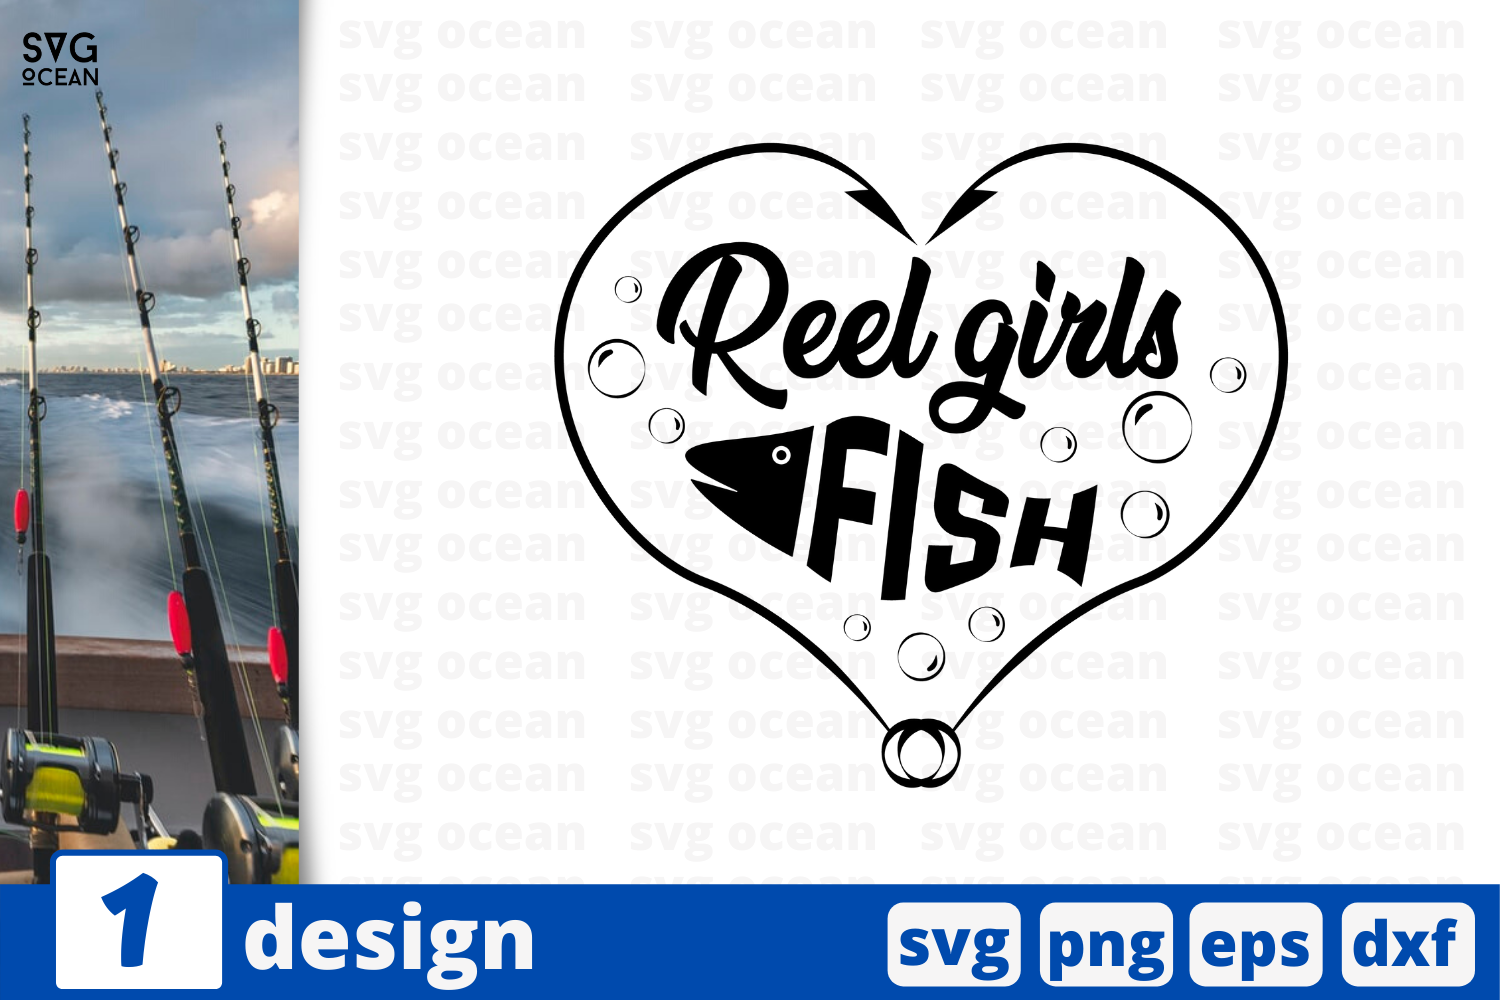 Download Free Reel Girls Fish Graphic By Svgocean Creative Fabrica for Cricut Explore, Silhouette and other cutting machines.